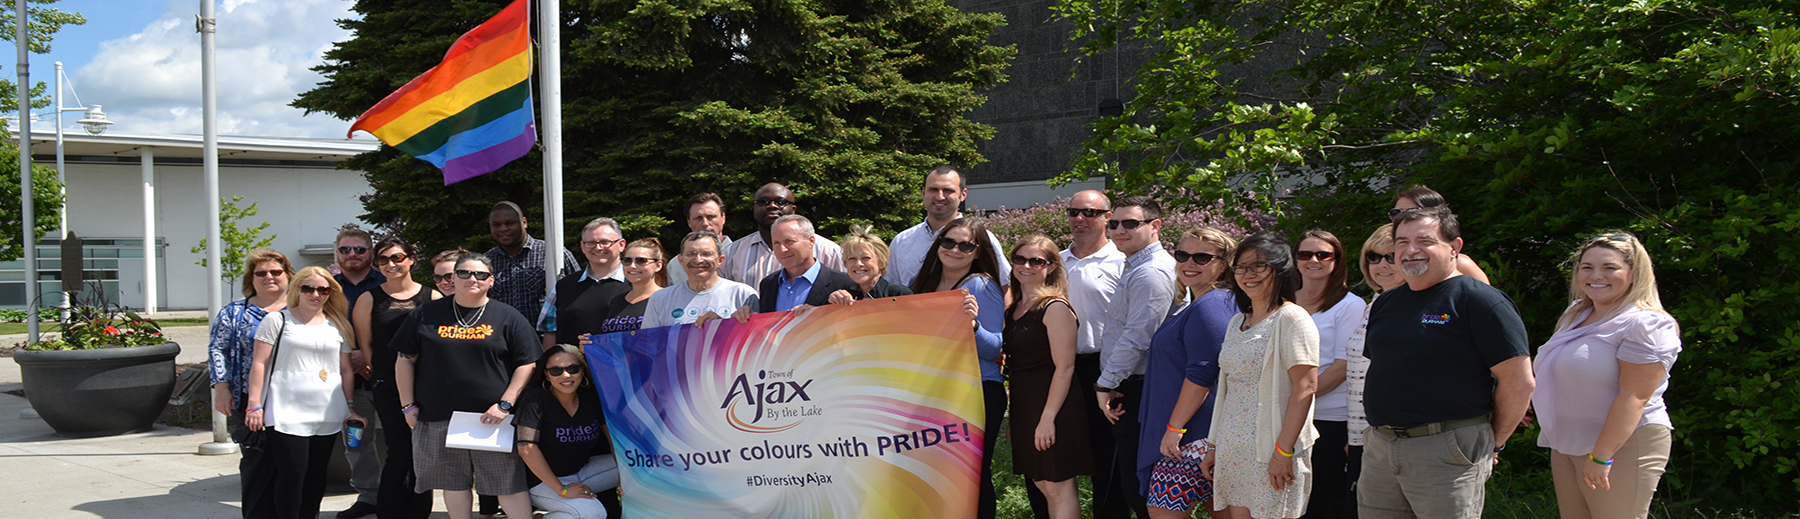 Celebrating Pride in Ajax